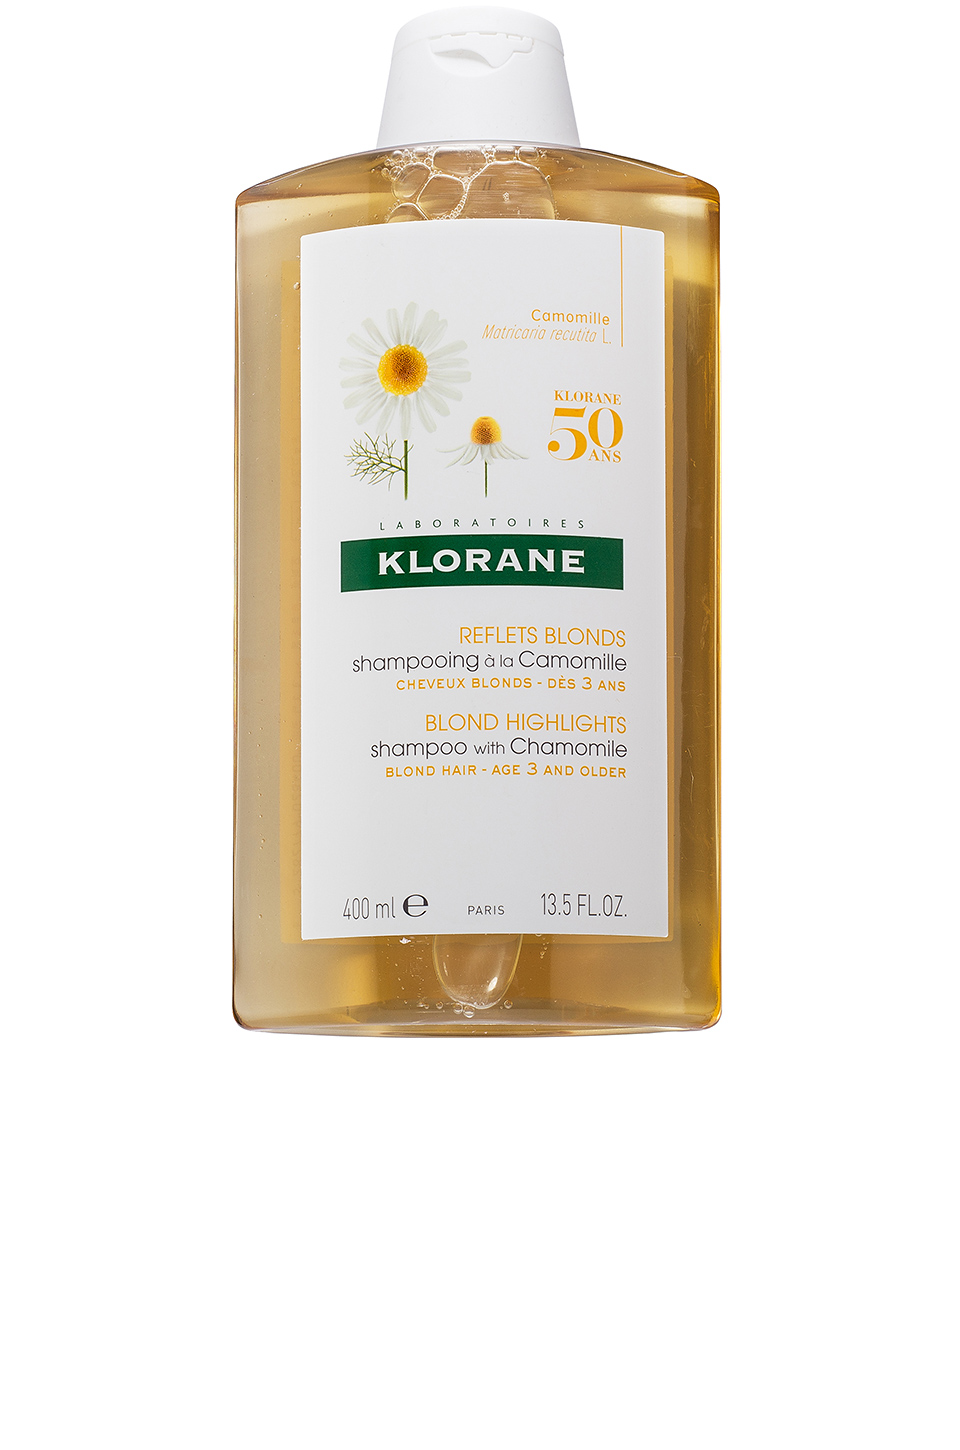 Klorane Shampoo with Chamomile in